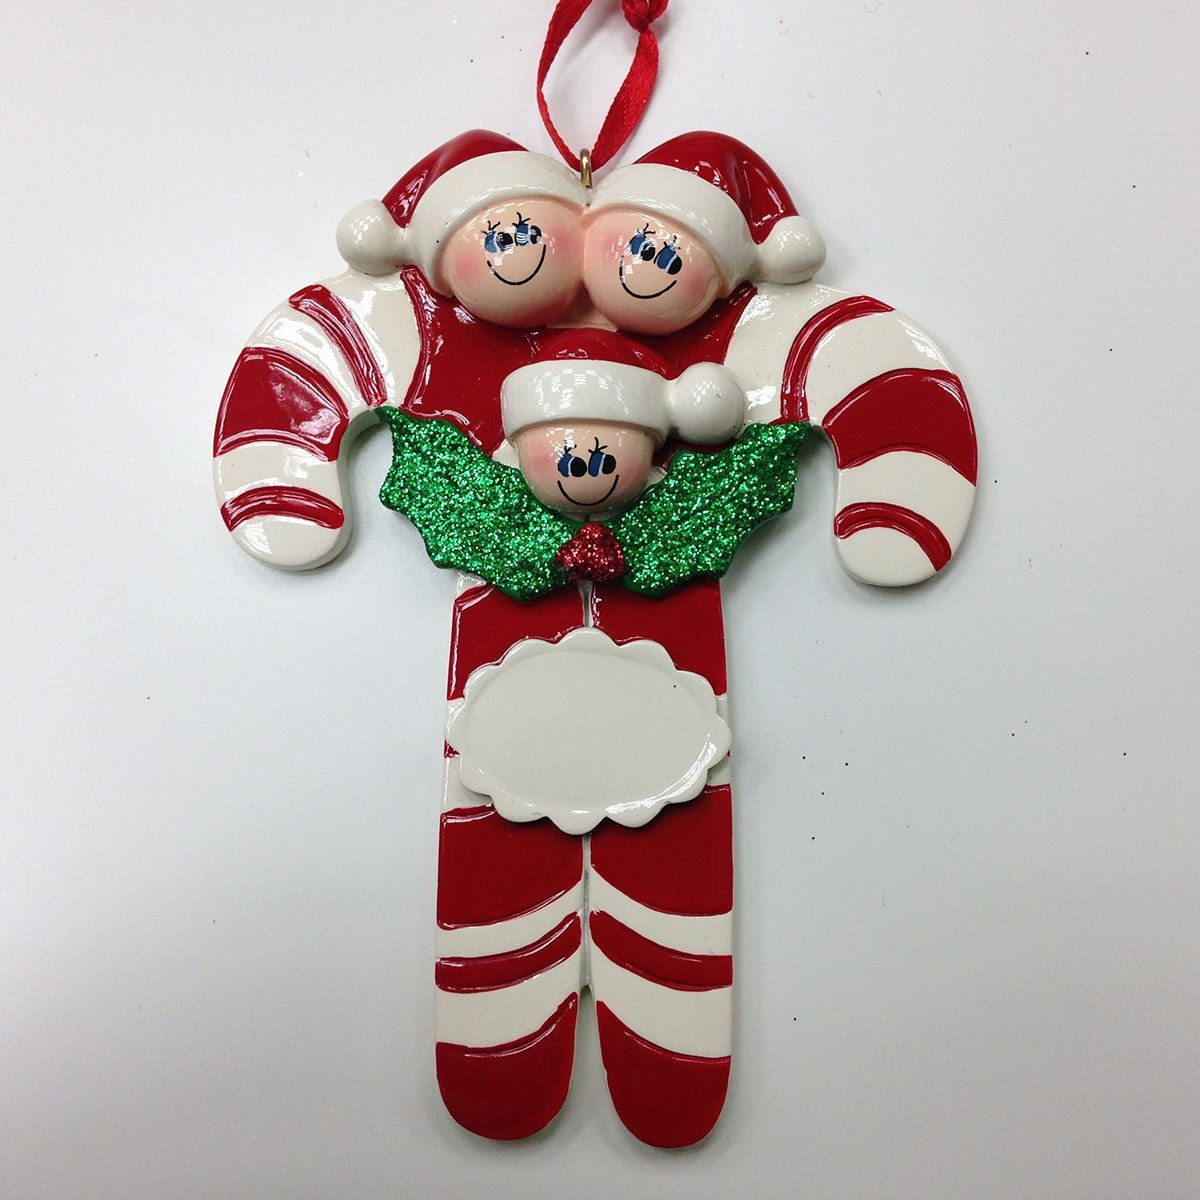 Candy Canes 3 Personalized Christmas Ornament DO-IT-YOURSELF